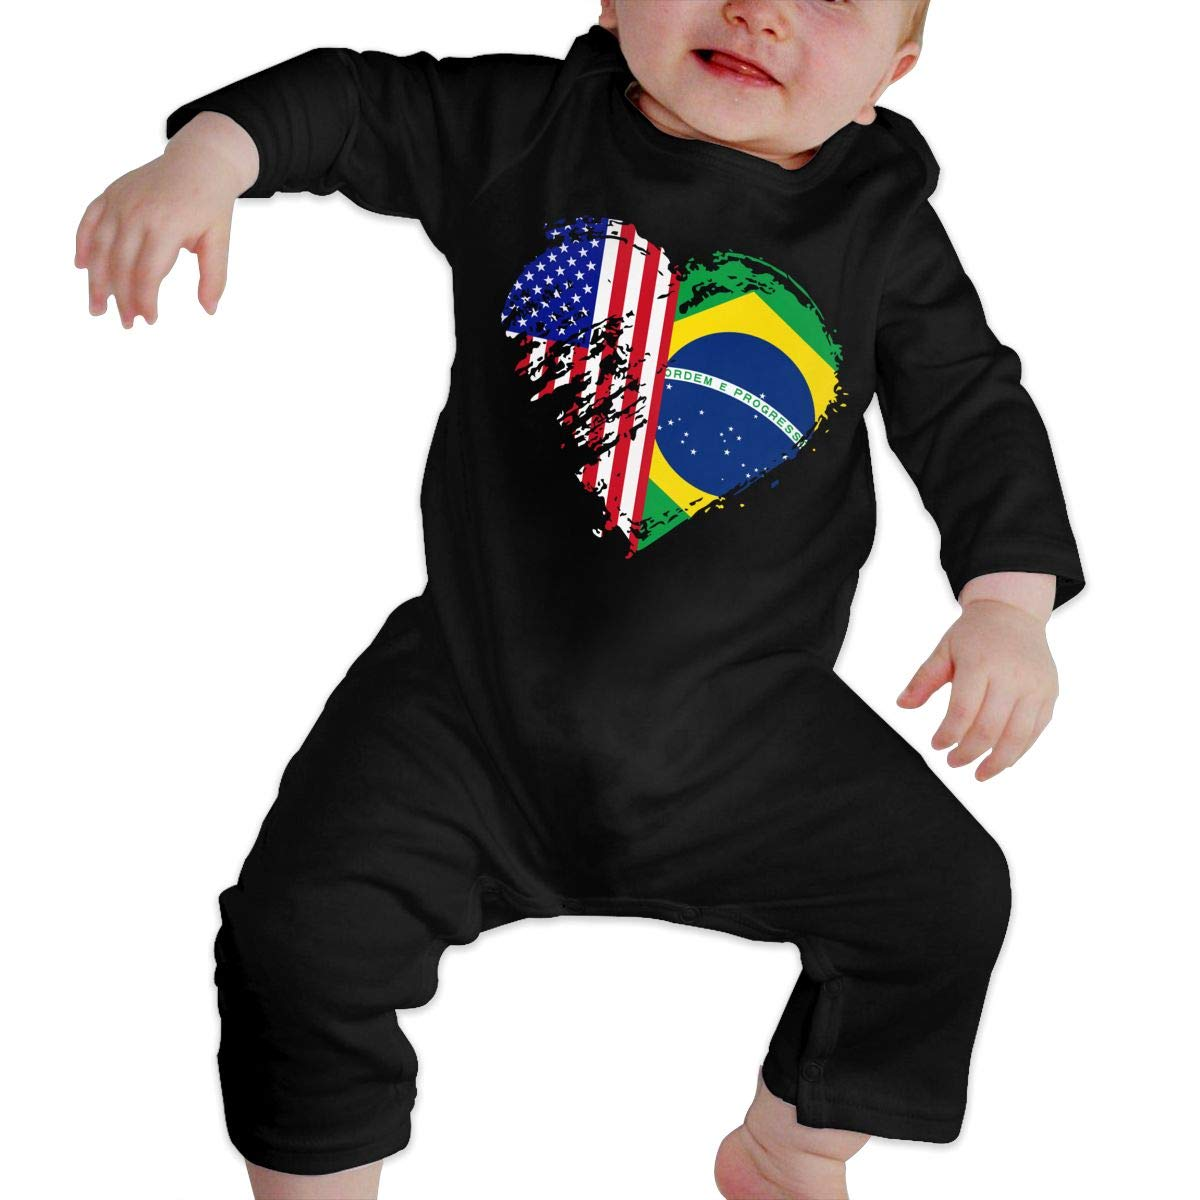 Mri-le1 Baby Girl Jumpsuit Grungy Brazil American Flag Heart Toddler Jumpsuit